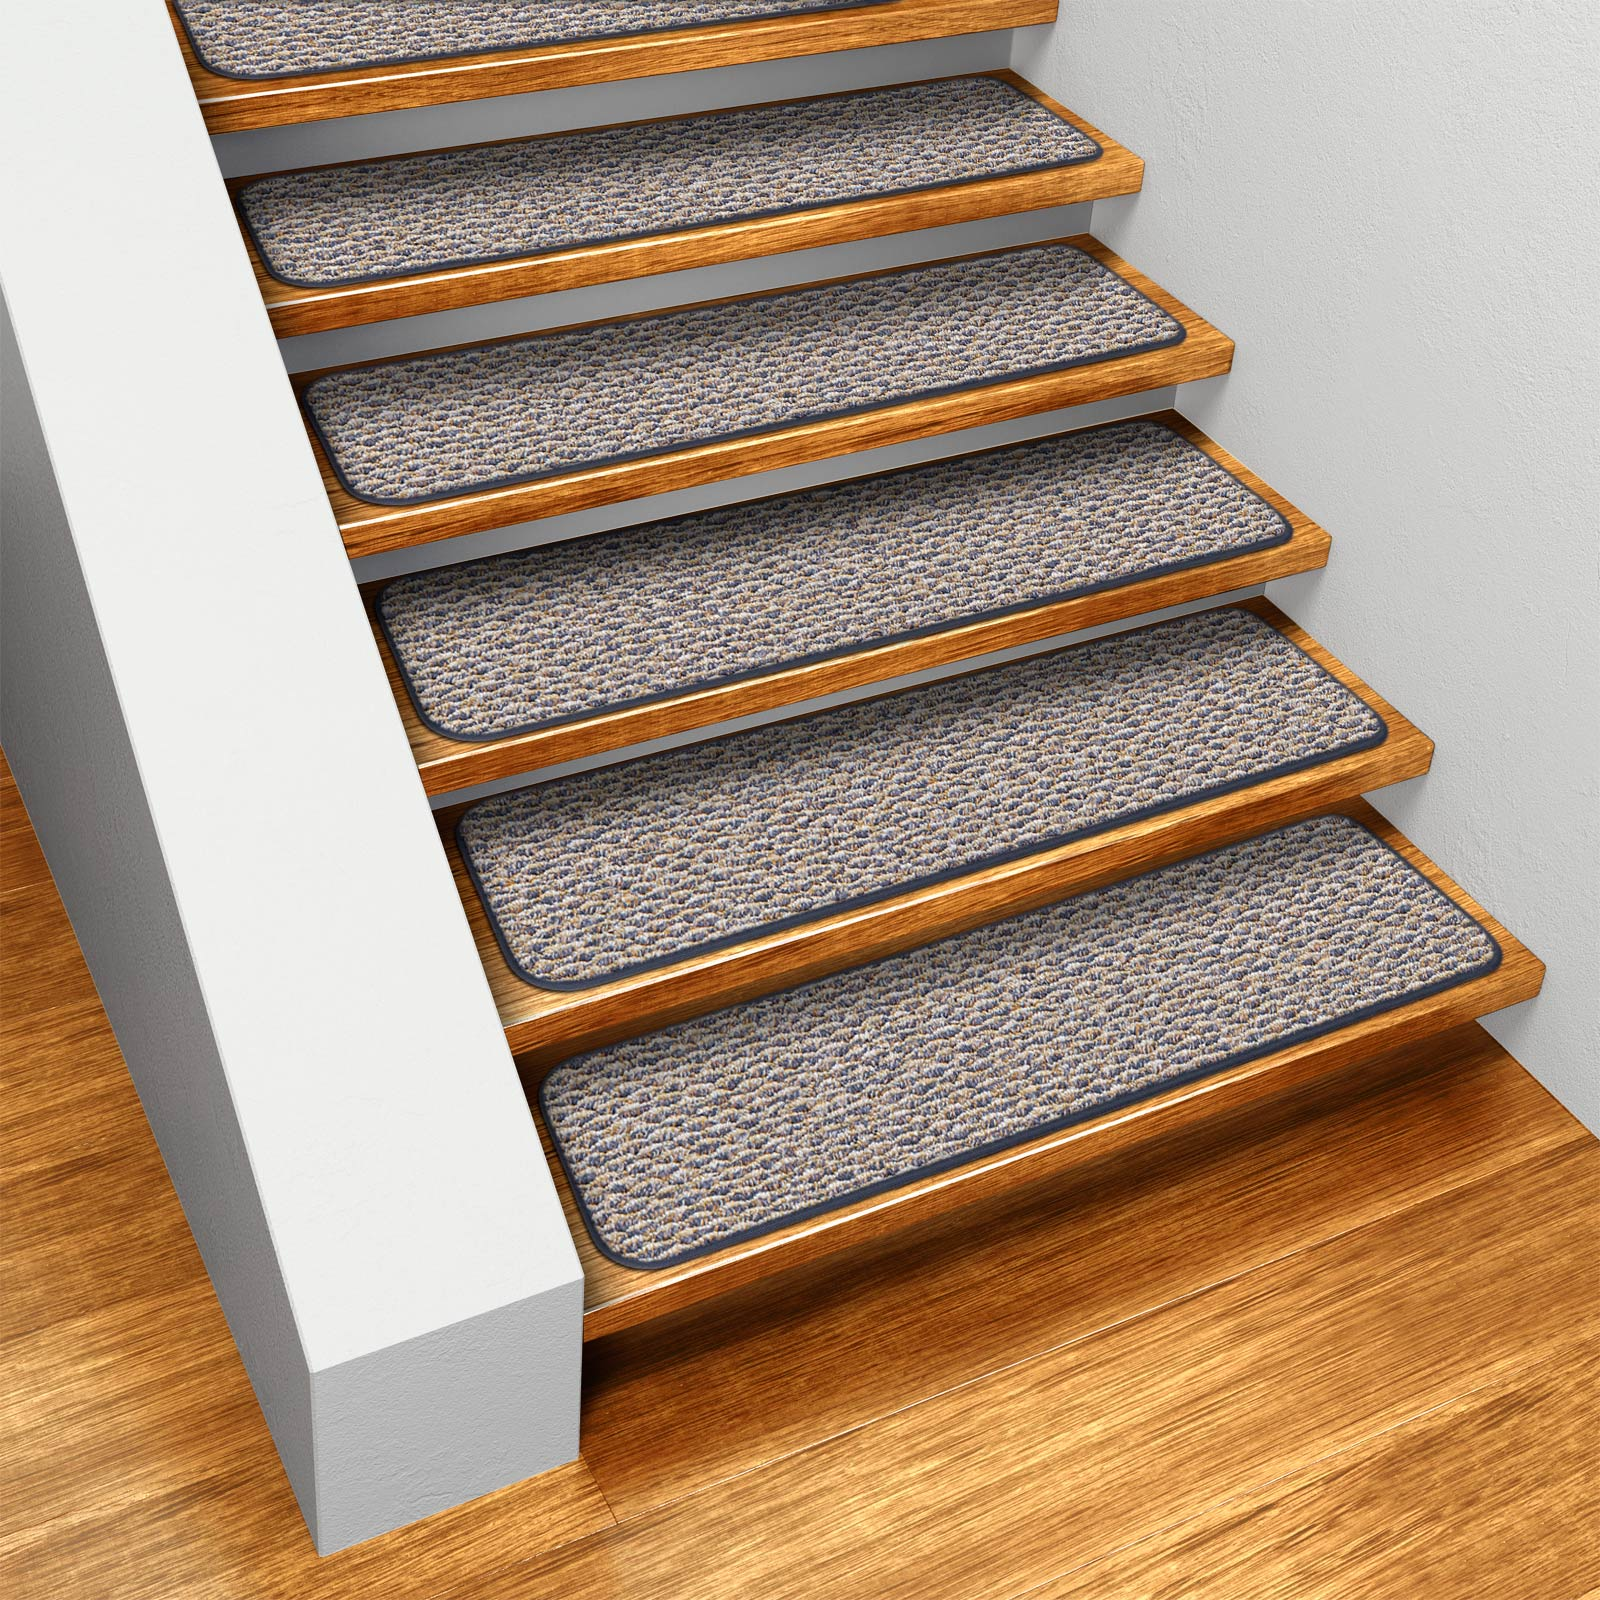 House, Home and More Set of 15 Skid-resistant Indoor Carpet Stair Treads - Denim Blue - 8 In. X 30 In. at Sears.com